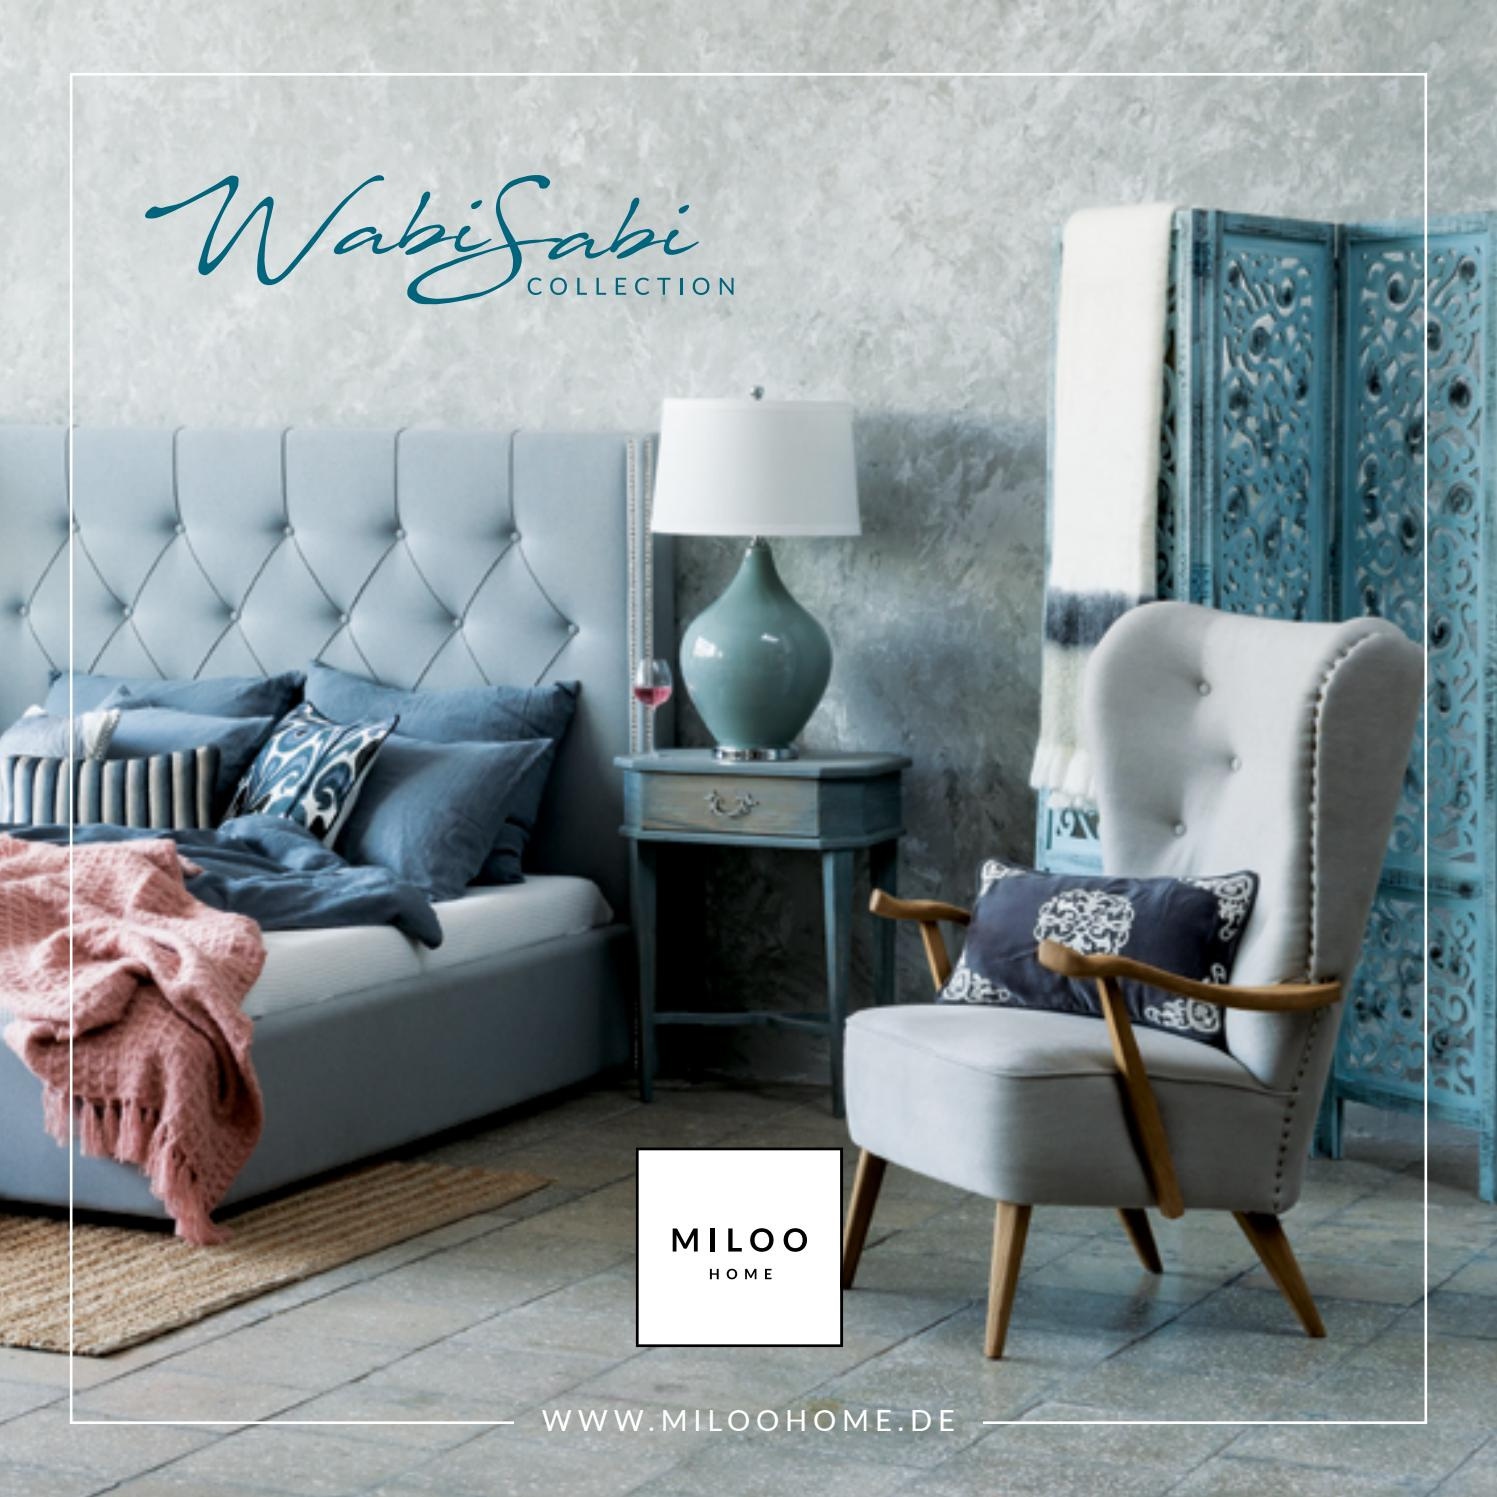 Wabi Sabi Collection By Miloohome Issuu